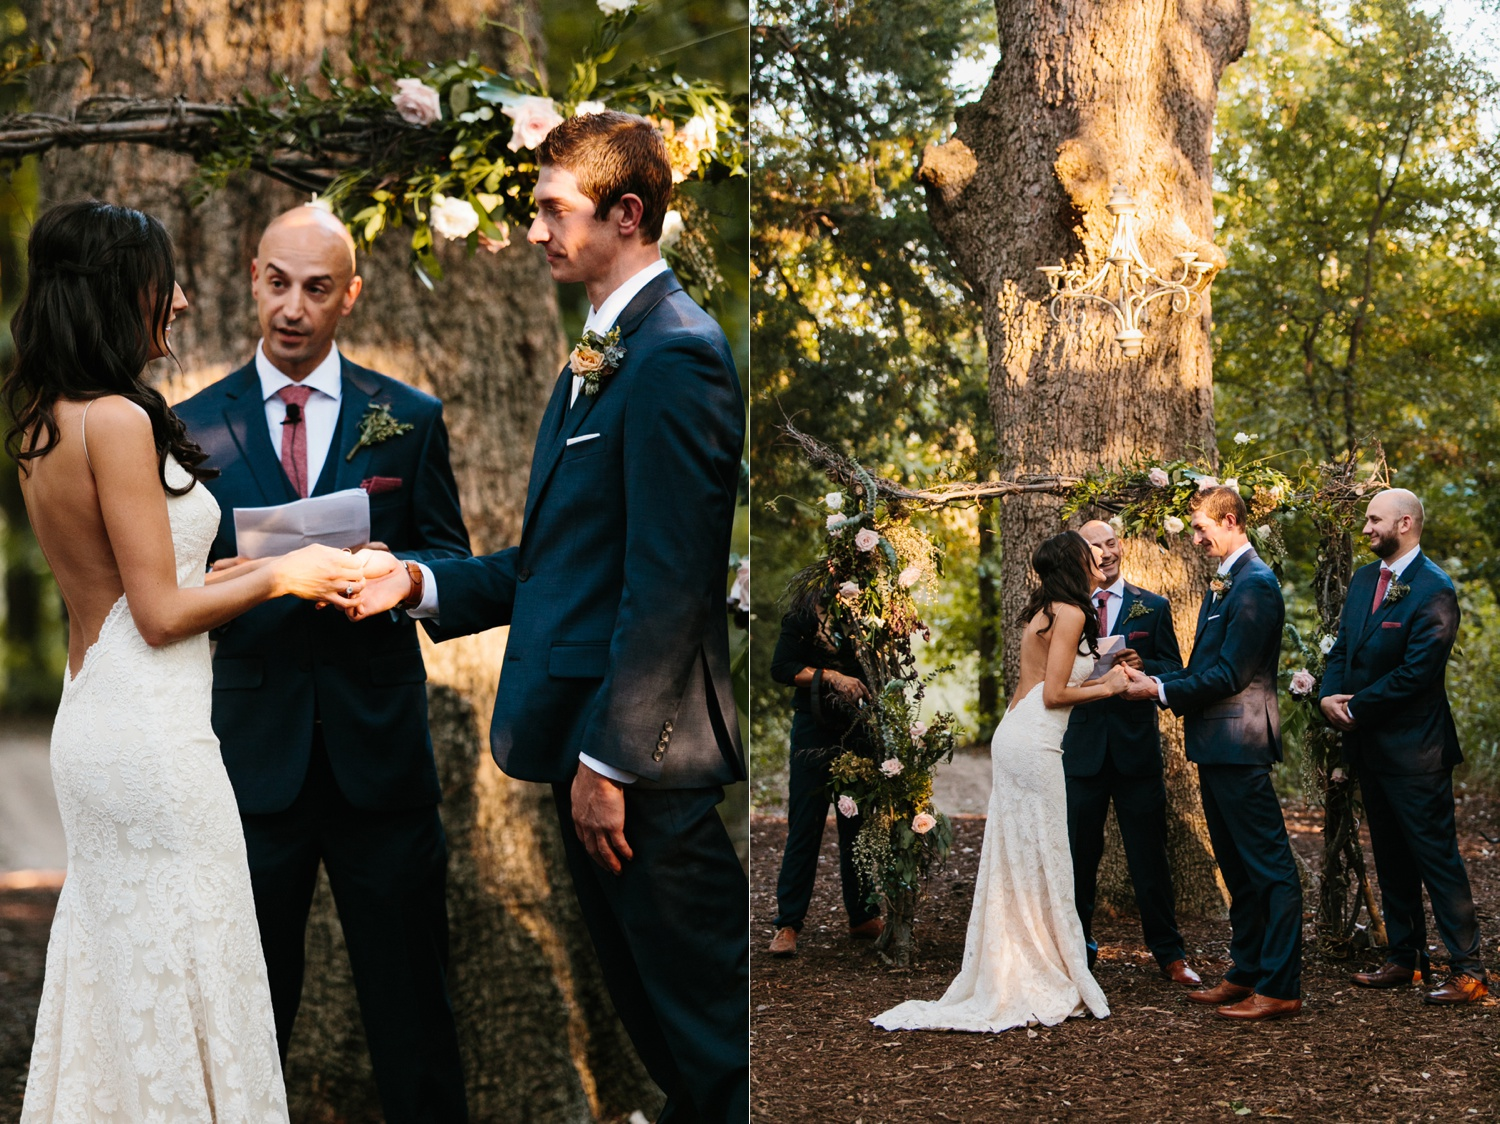 Erica + Henry | a bohemian inspired wedding at Chandlers Gardens in Salina, TX by North Texas Wedding Photographer Rachel Meagan Photography 090